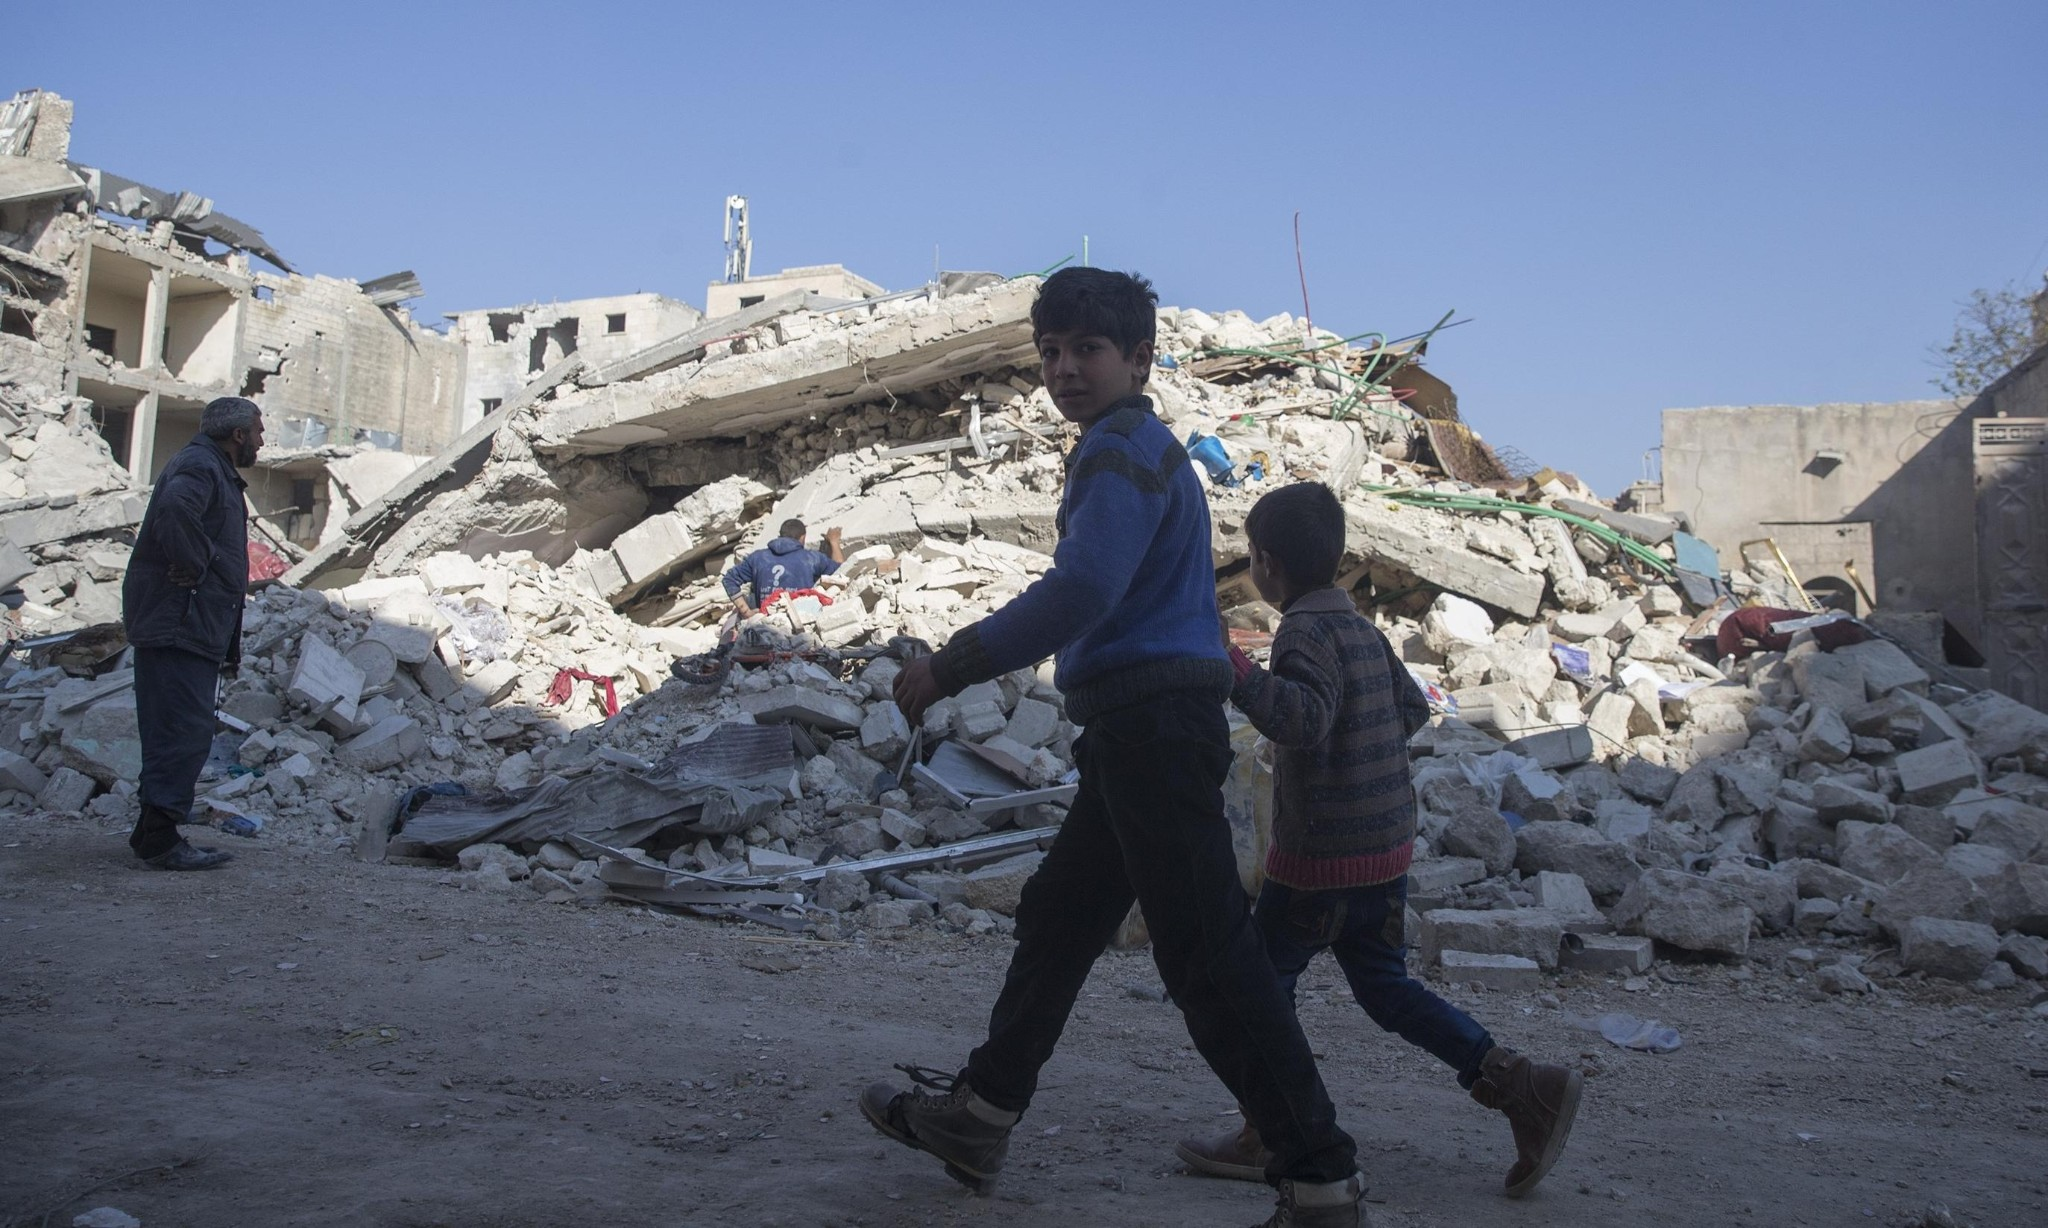 Syrian children suffering staggering levels of trauma, report warns